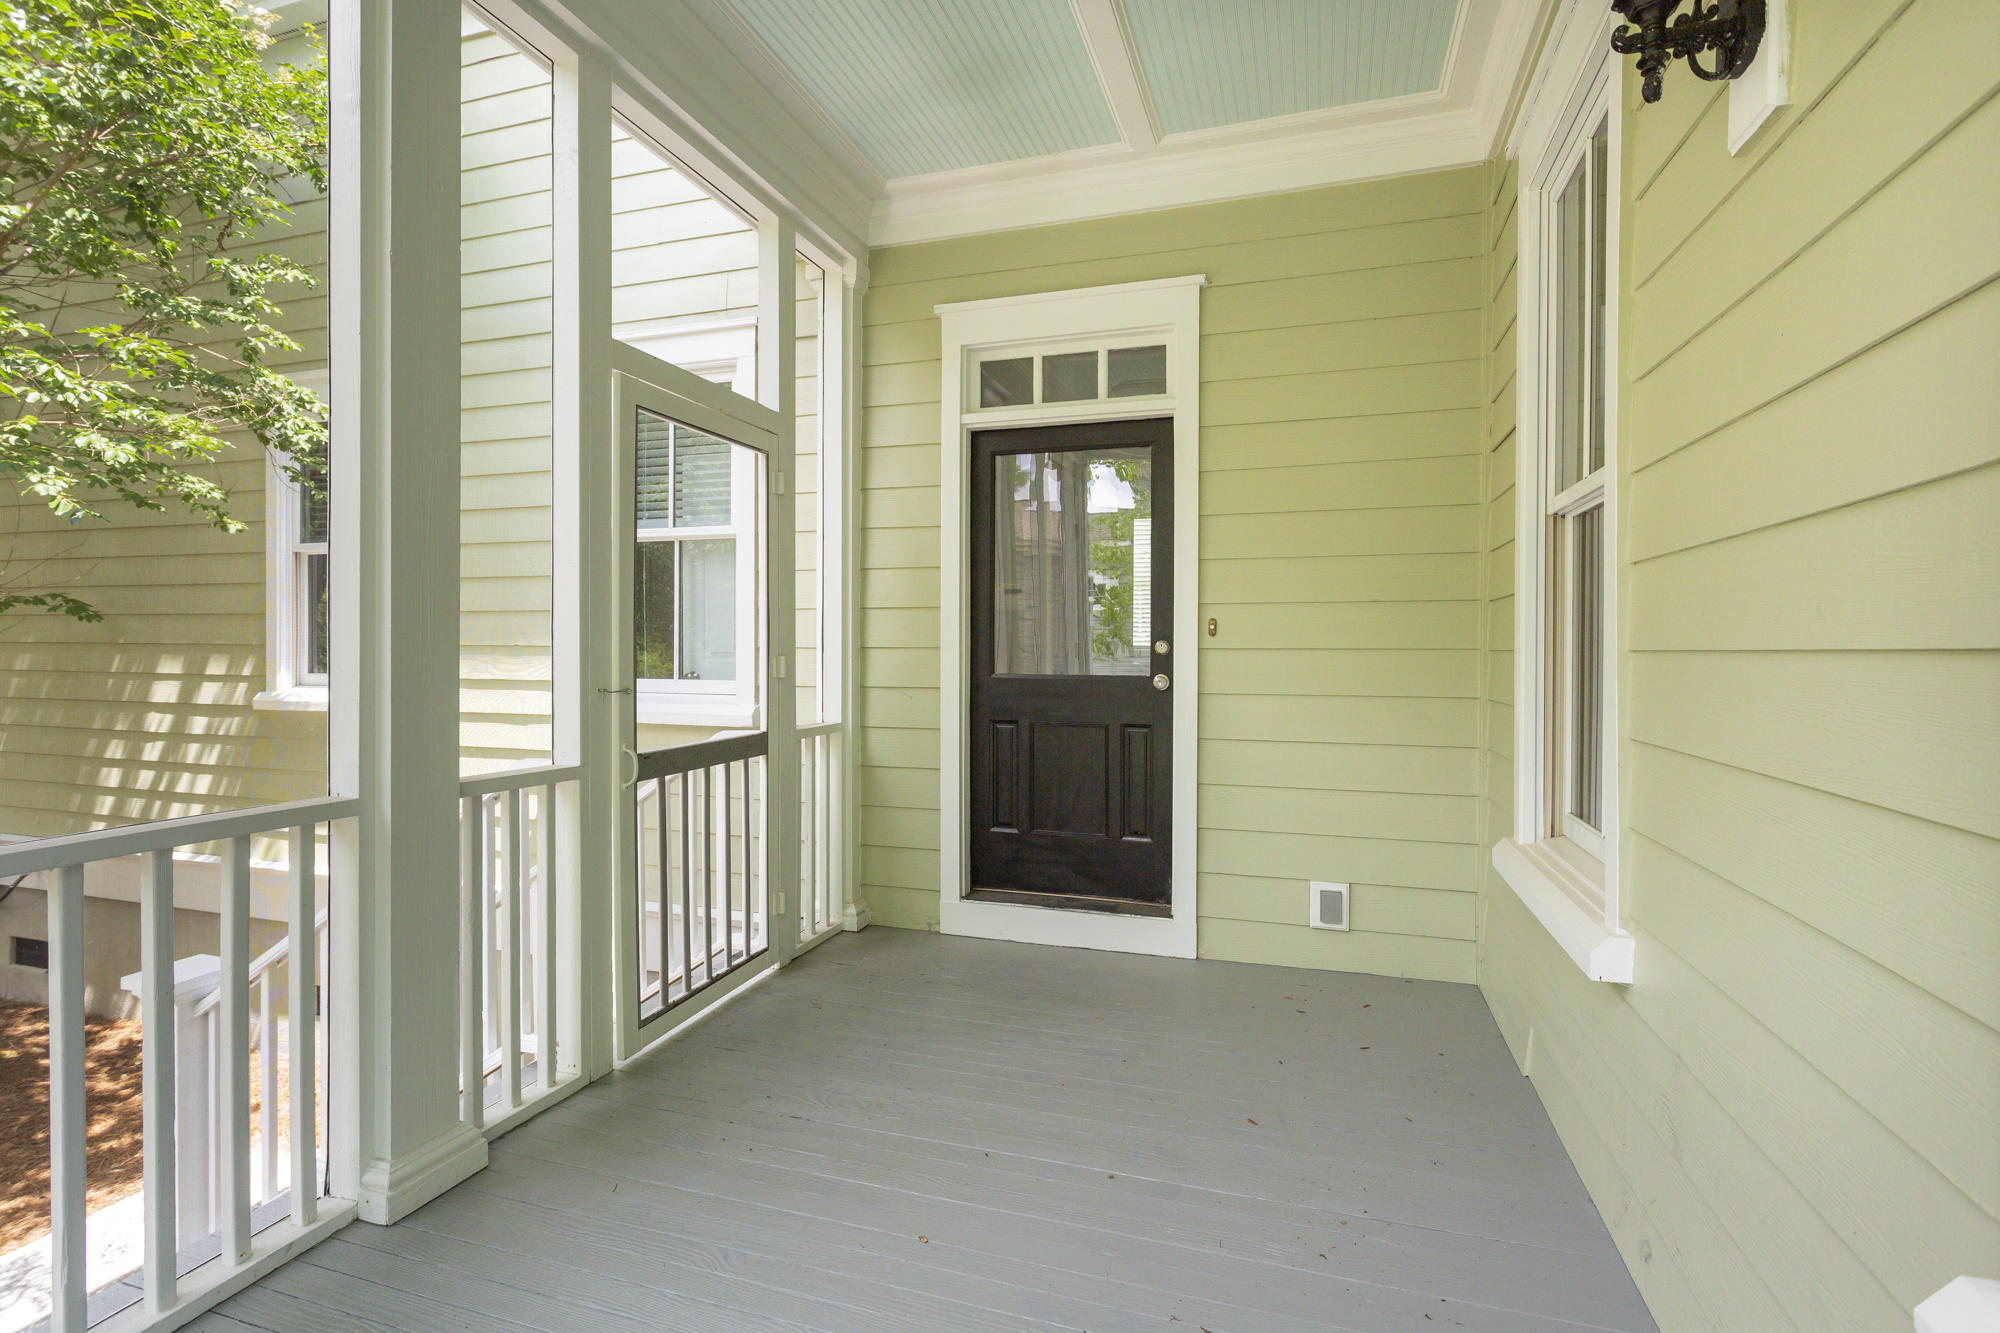 Belle Hall Homes For Sale - 328 Bermuda Towne, Mount Pleasant, SC - 26